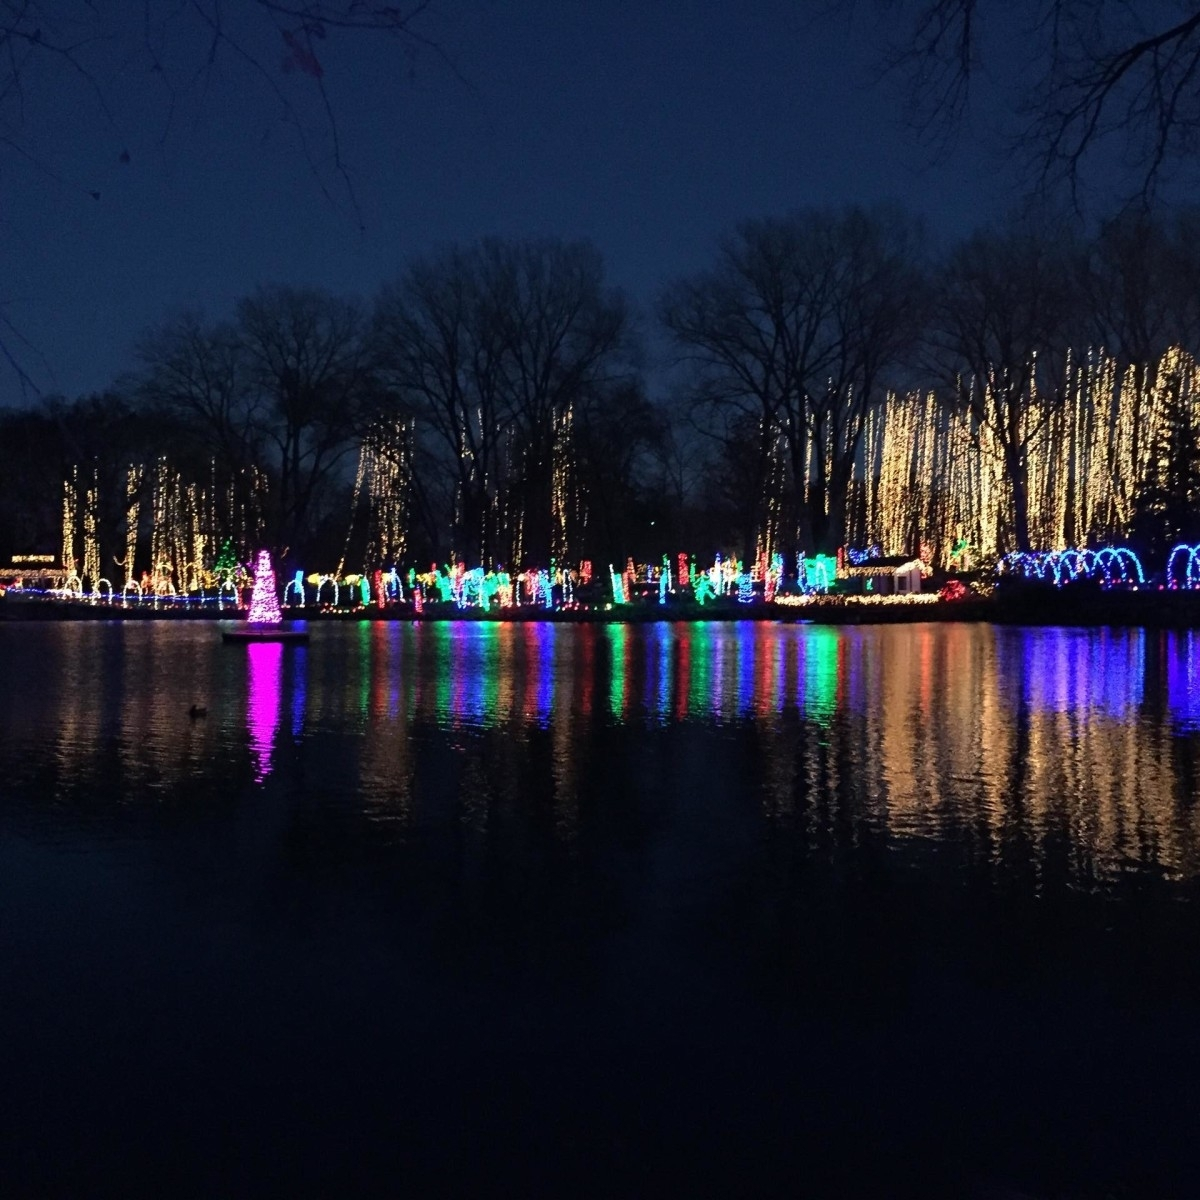 Sparkling And Spectacular: The Holiday Light Show - Rotary throughout Rotary Garden Light Show Janesville Wi